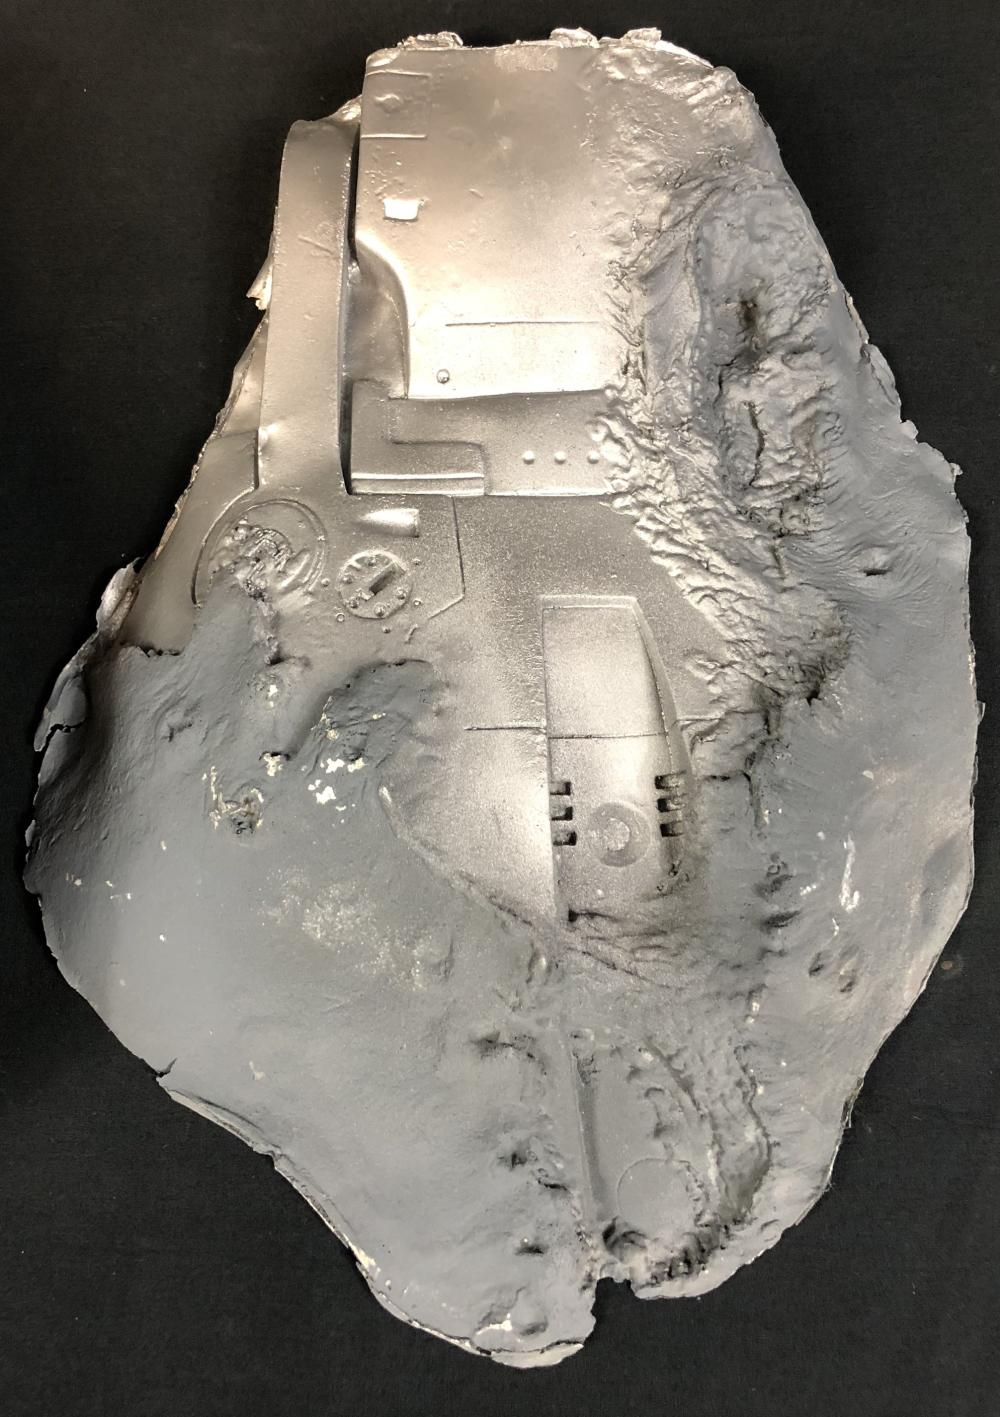 Lot 154: Terminator 2: Judgment Day (1991) - Arnold Schwarzenegger Chest Mold and Appliance